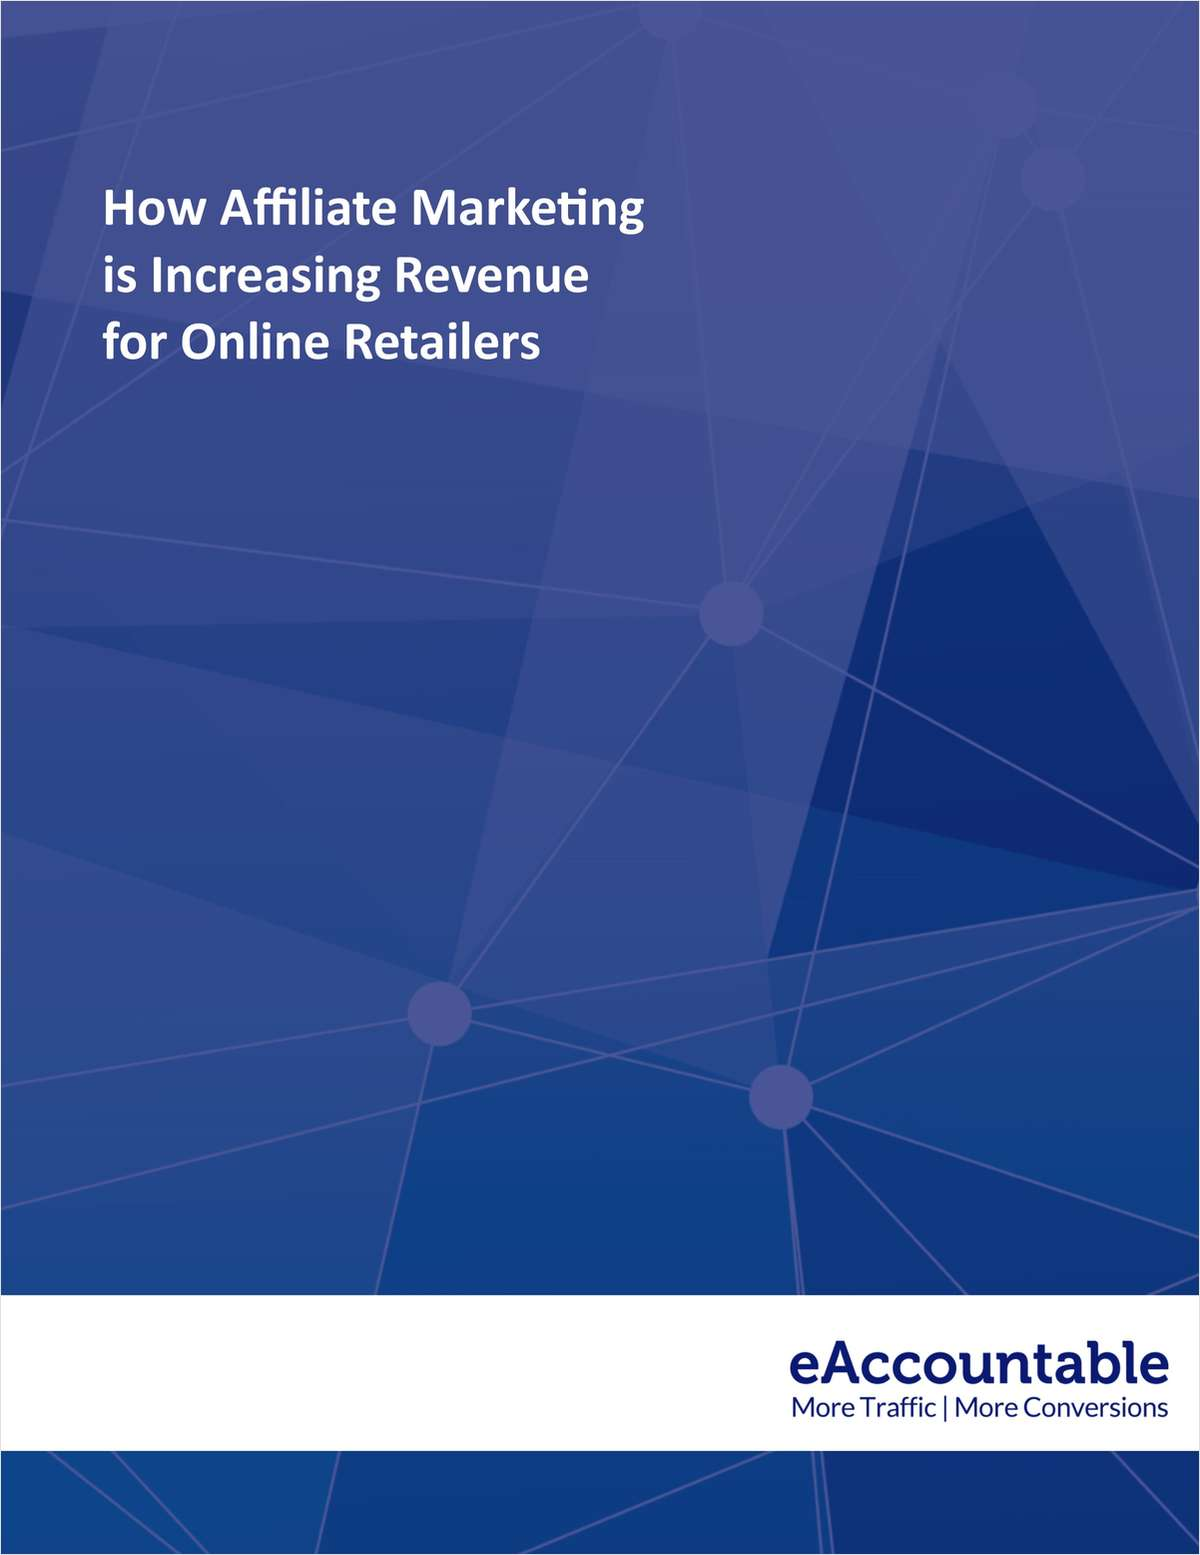 How Affiliate Marketing is Increasing Revenue for Online Retailers